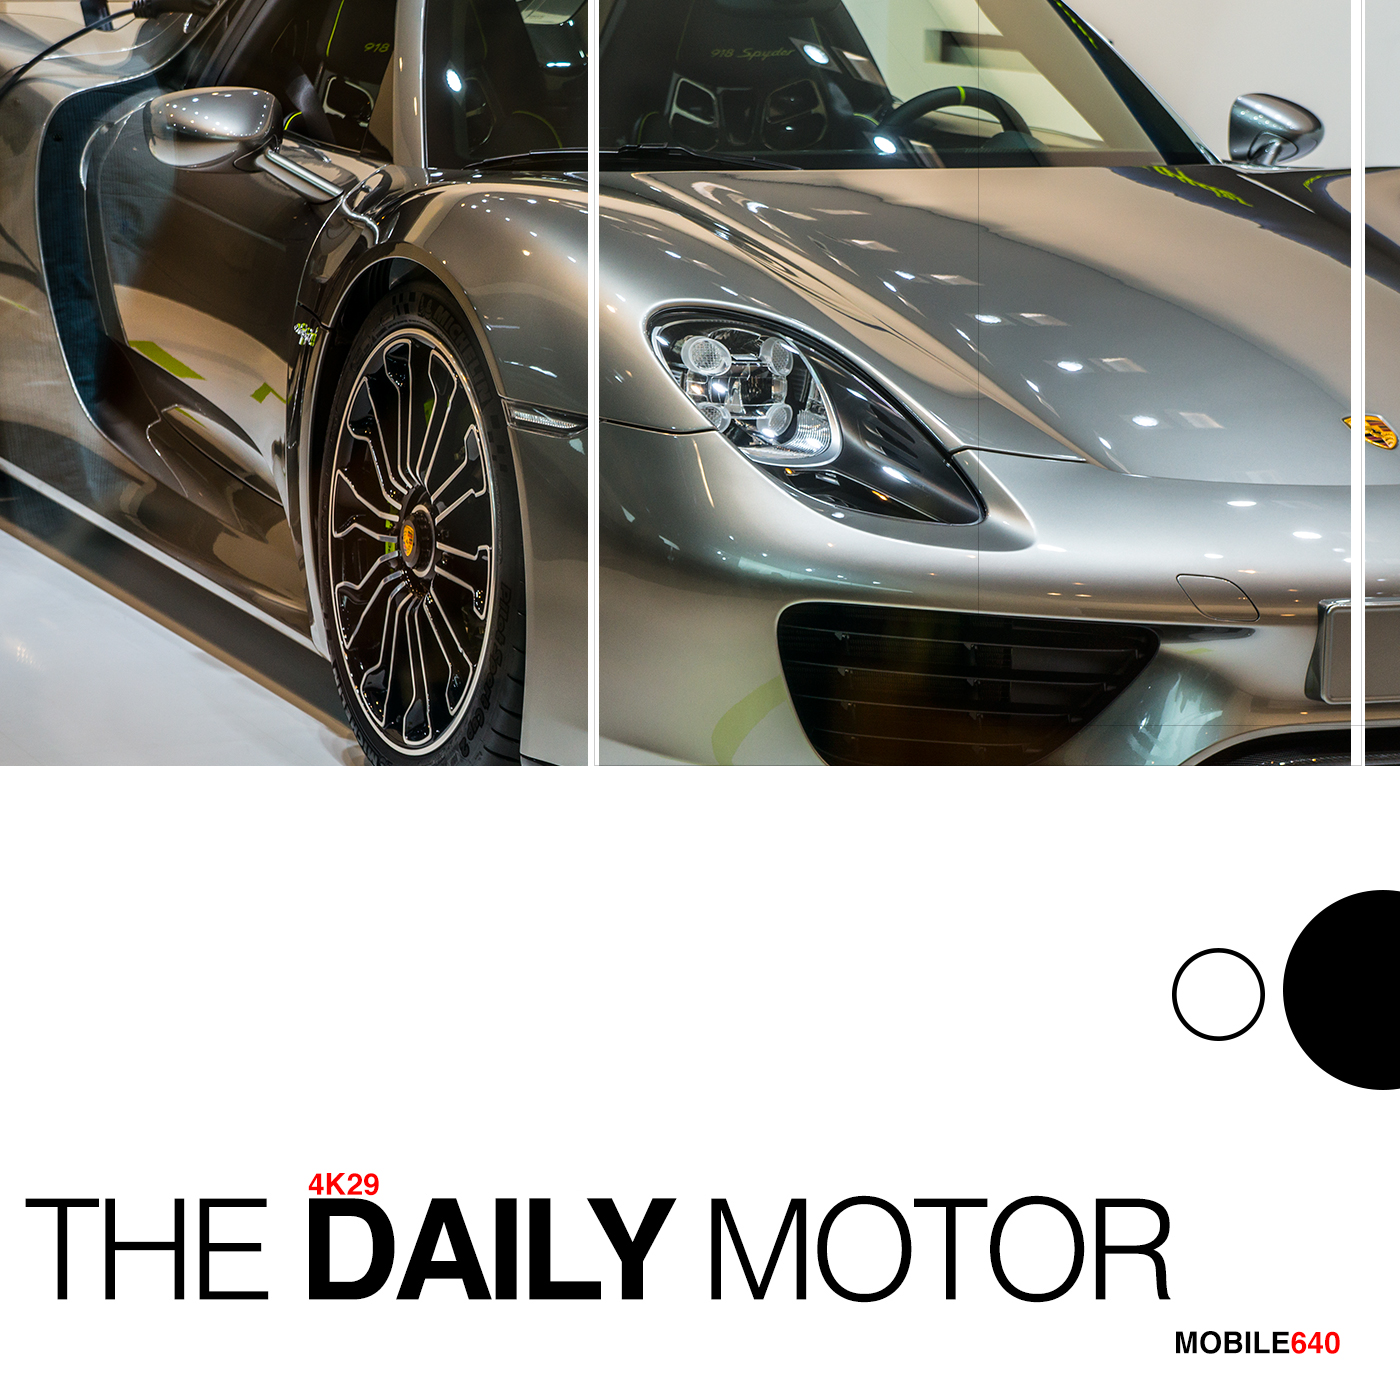 THE DAILY MOTOR 4K29 MOBILE640